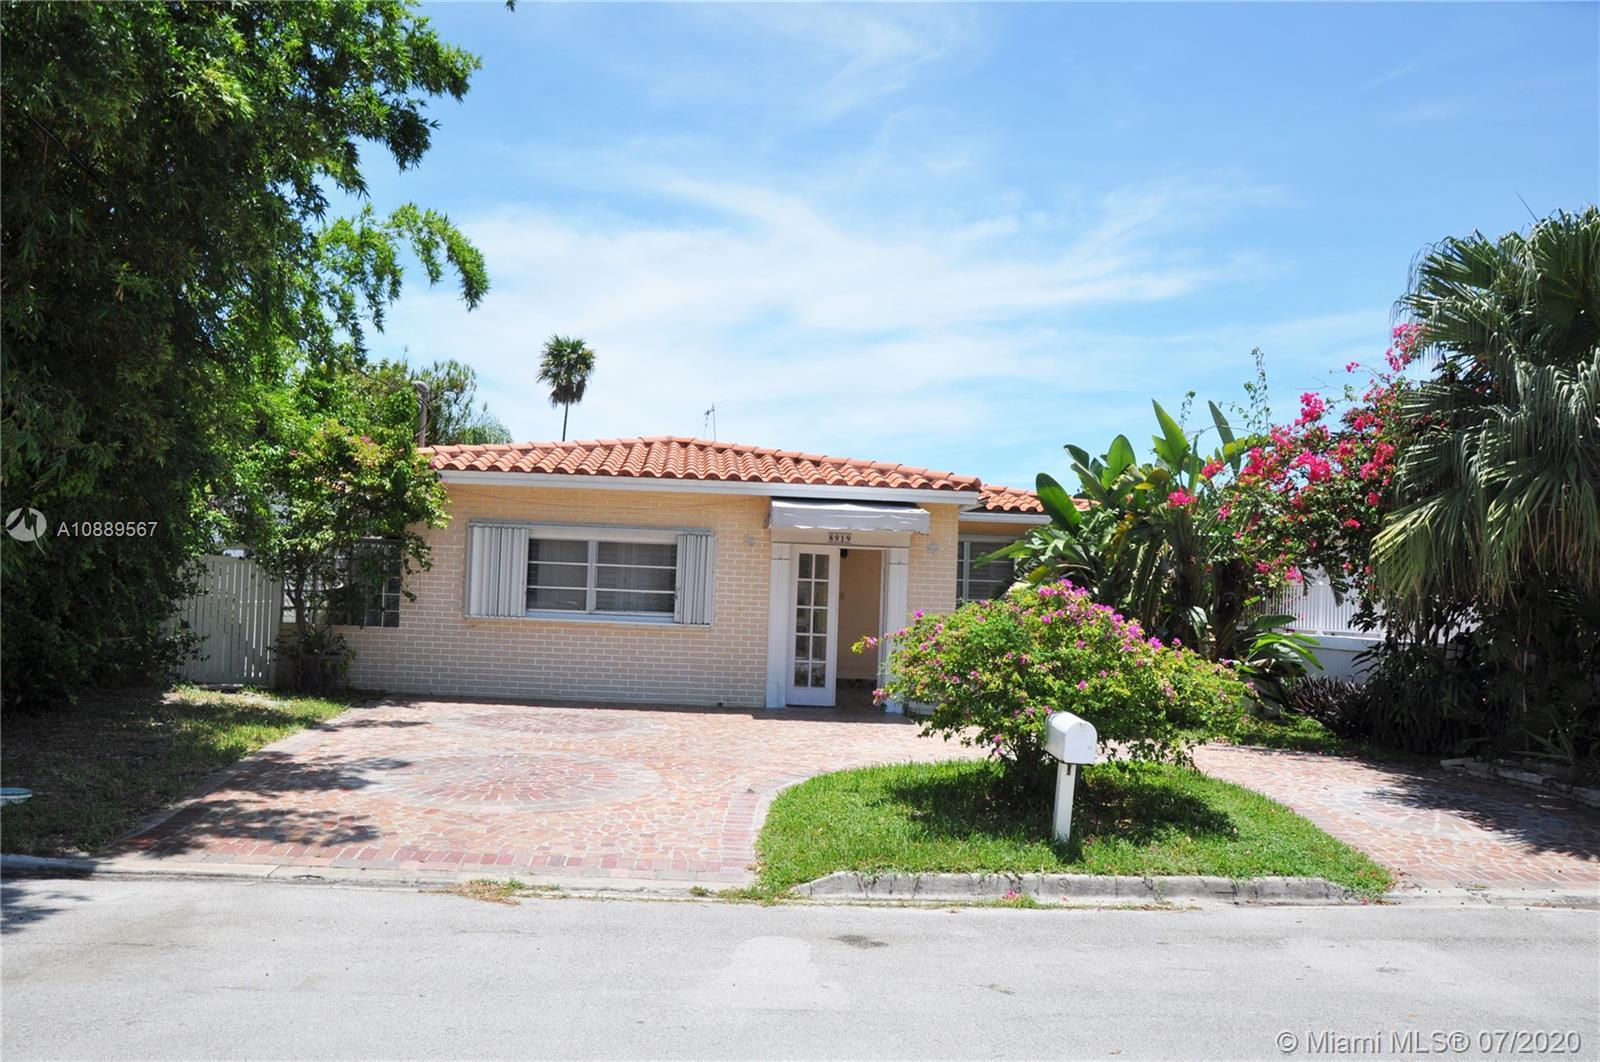 Surfside Large 3/2 with over 2,000 sq. ft. of living area located on a quiet street of 89th & Garlan